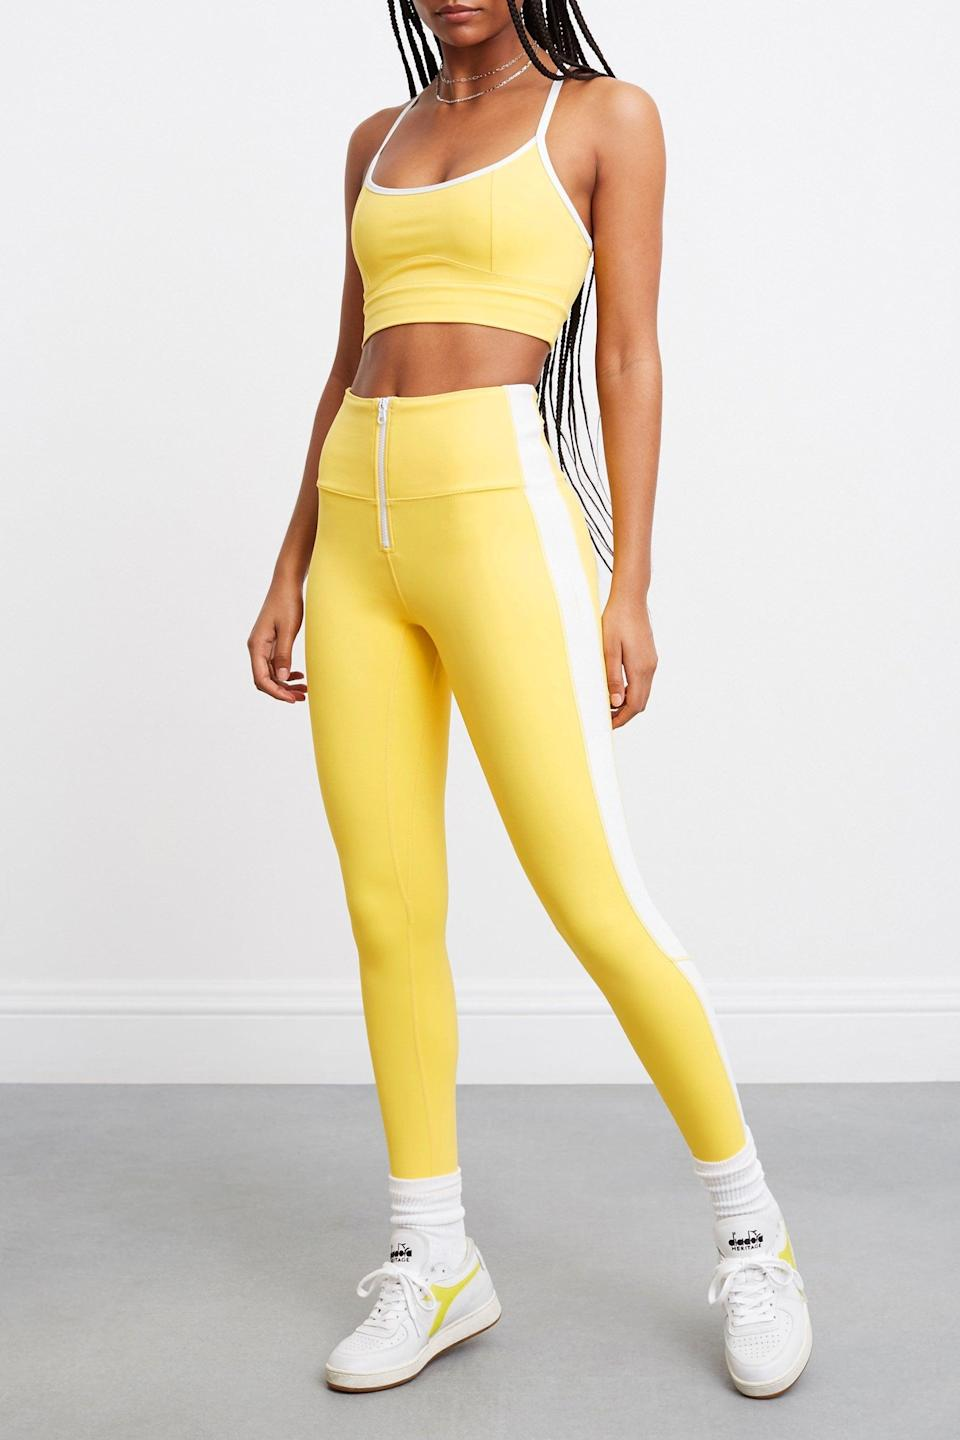 <p>Bring the sunshine to your workout in this <span>Bandier x Solid &amp; Striped Soleil Zip Front Legging</span> ($79, originally $118) and the matching <span>Soleil Strappy Bra</span> ($54, originally $78).</p>